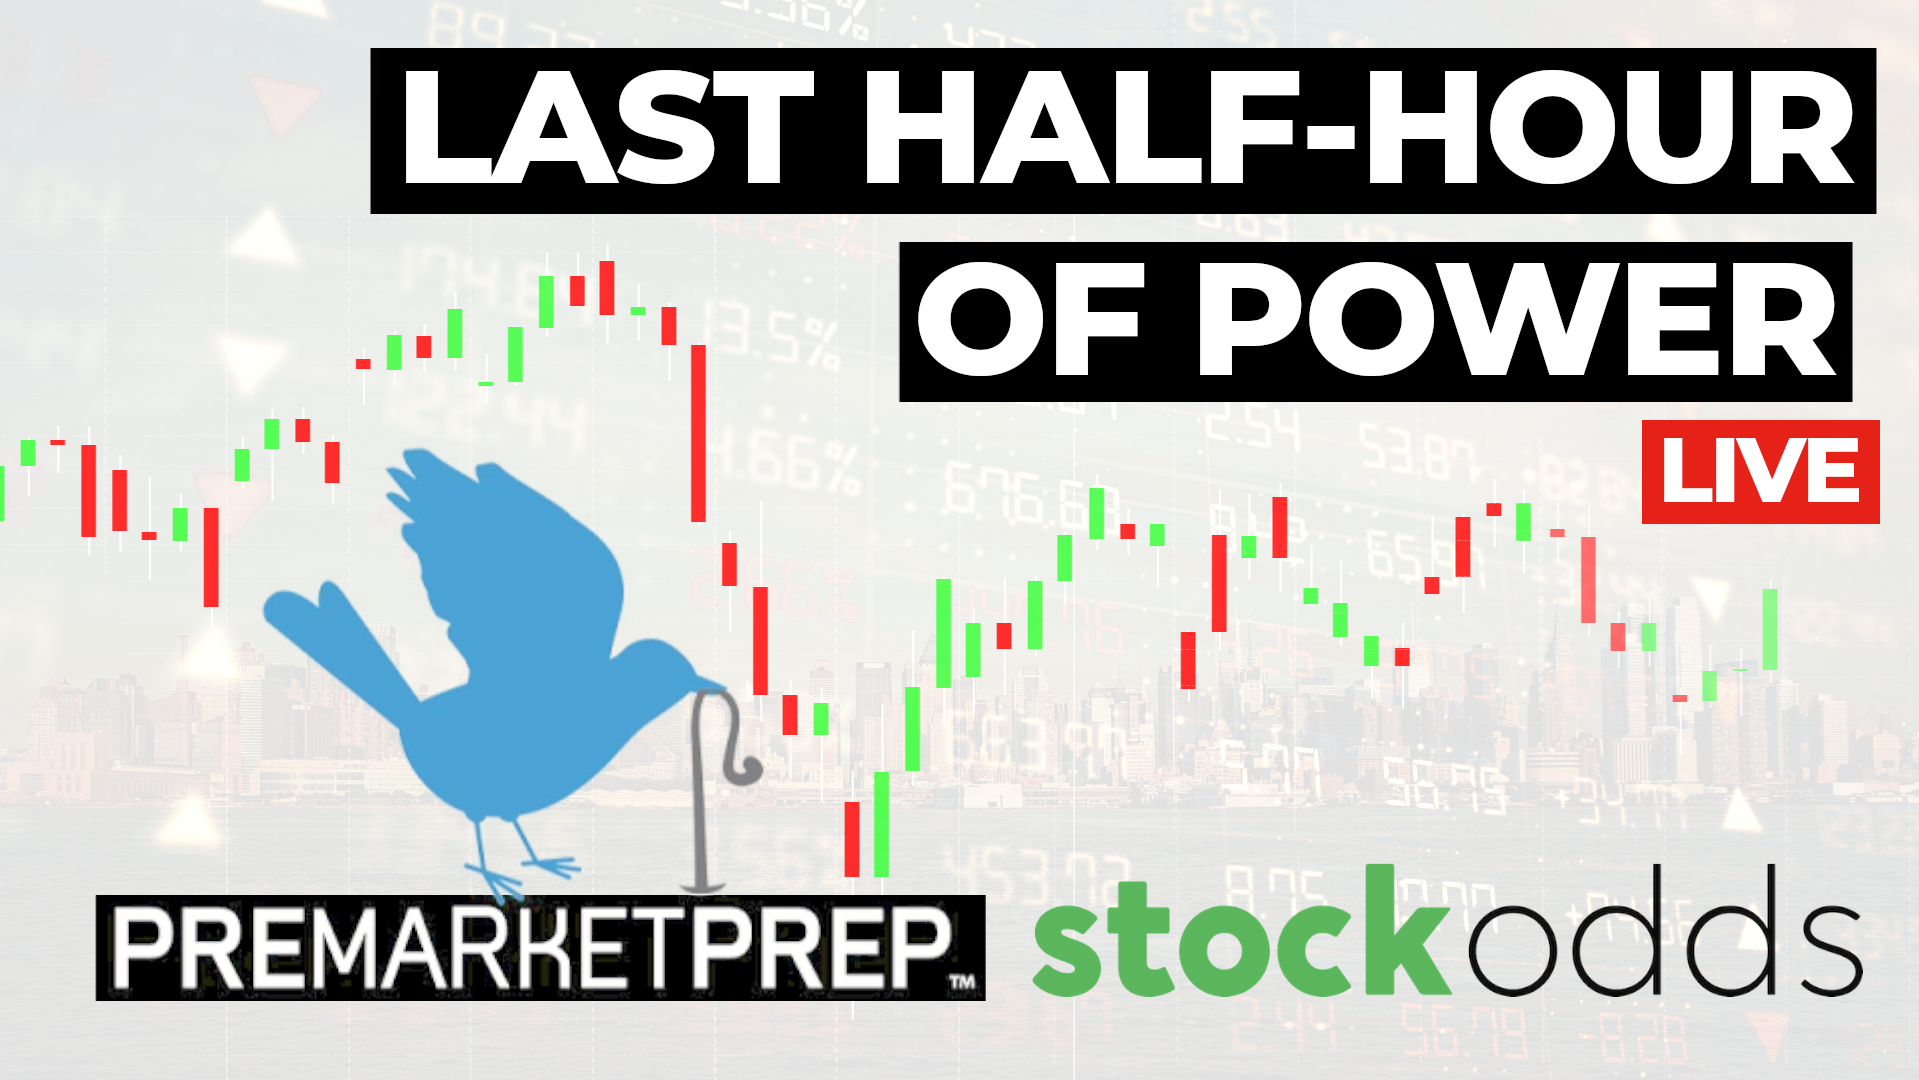 Last Half-Hour of Power with StockOdds